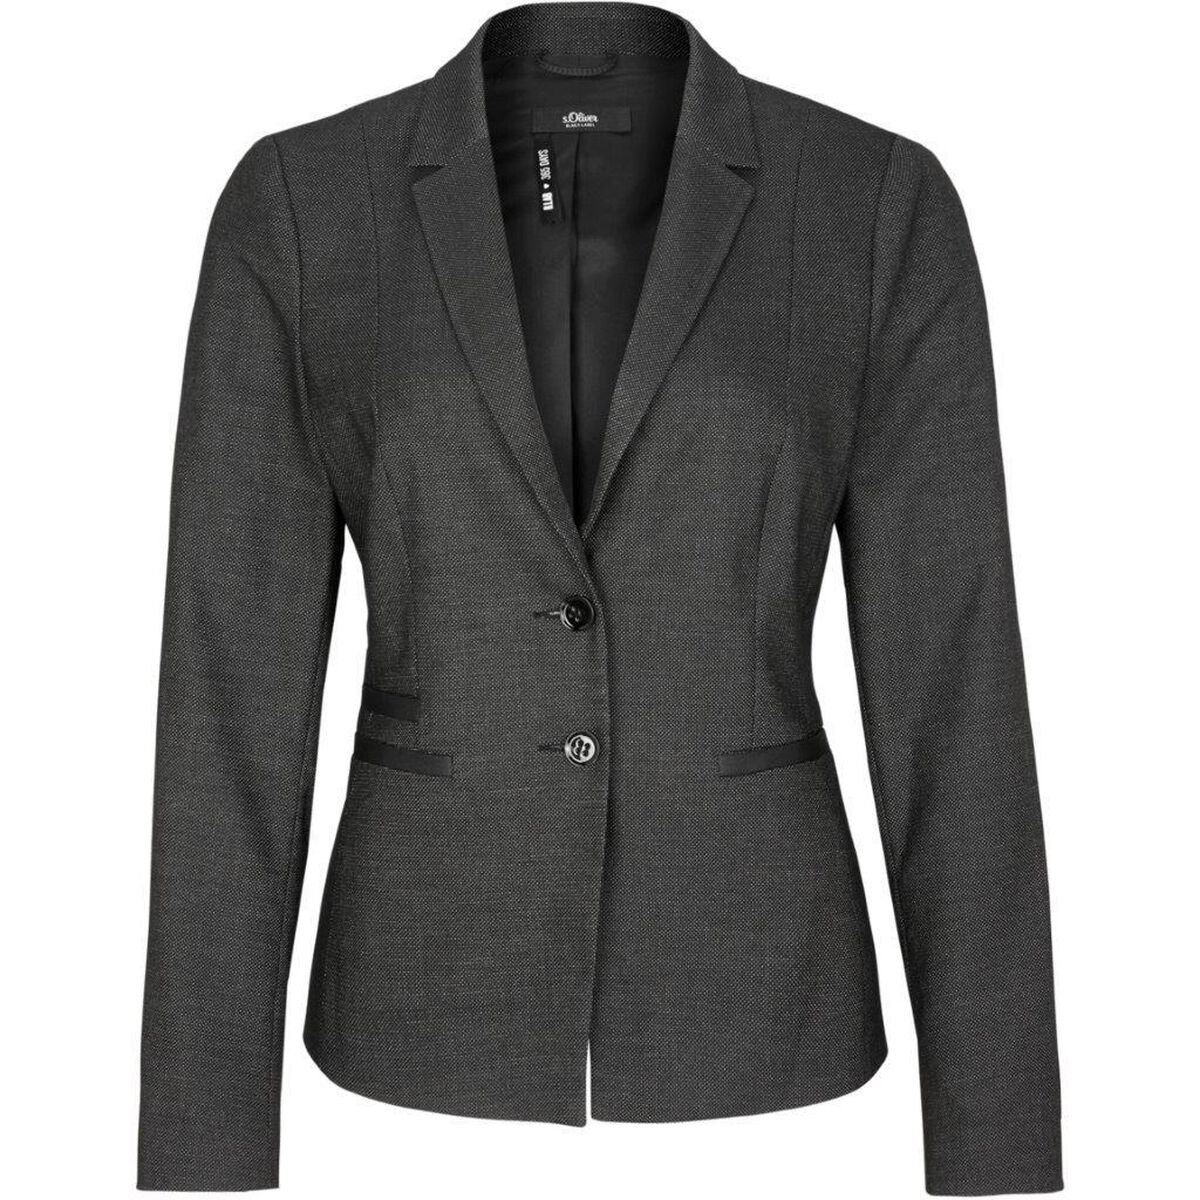 huge selection of 5acf1 d5bff Damen Blazer, dunkelgrau, 40